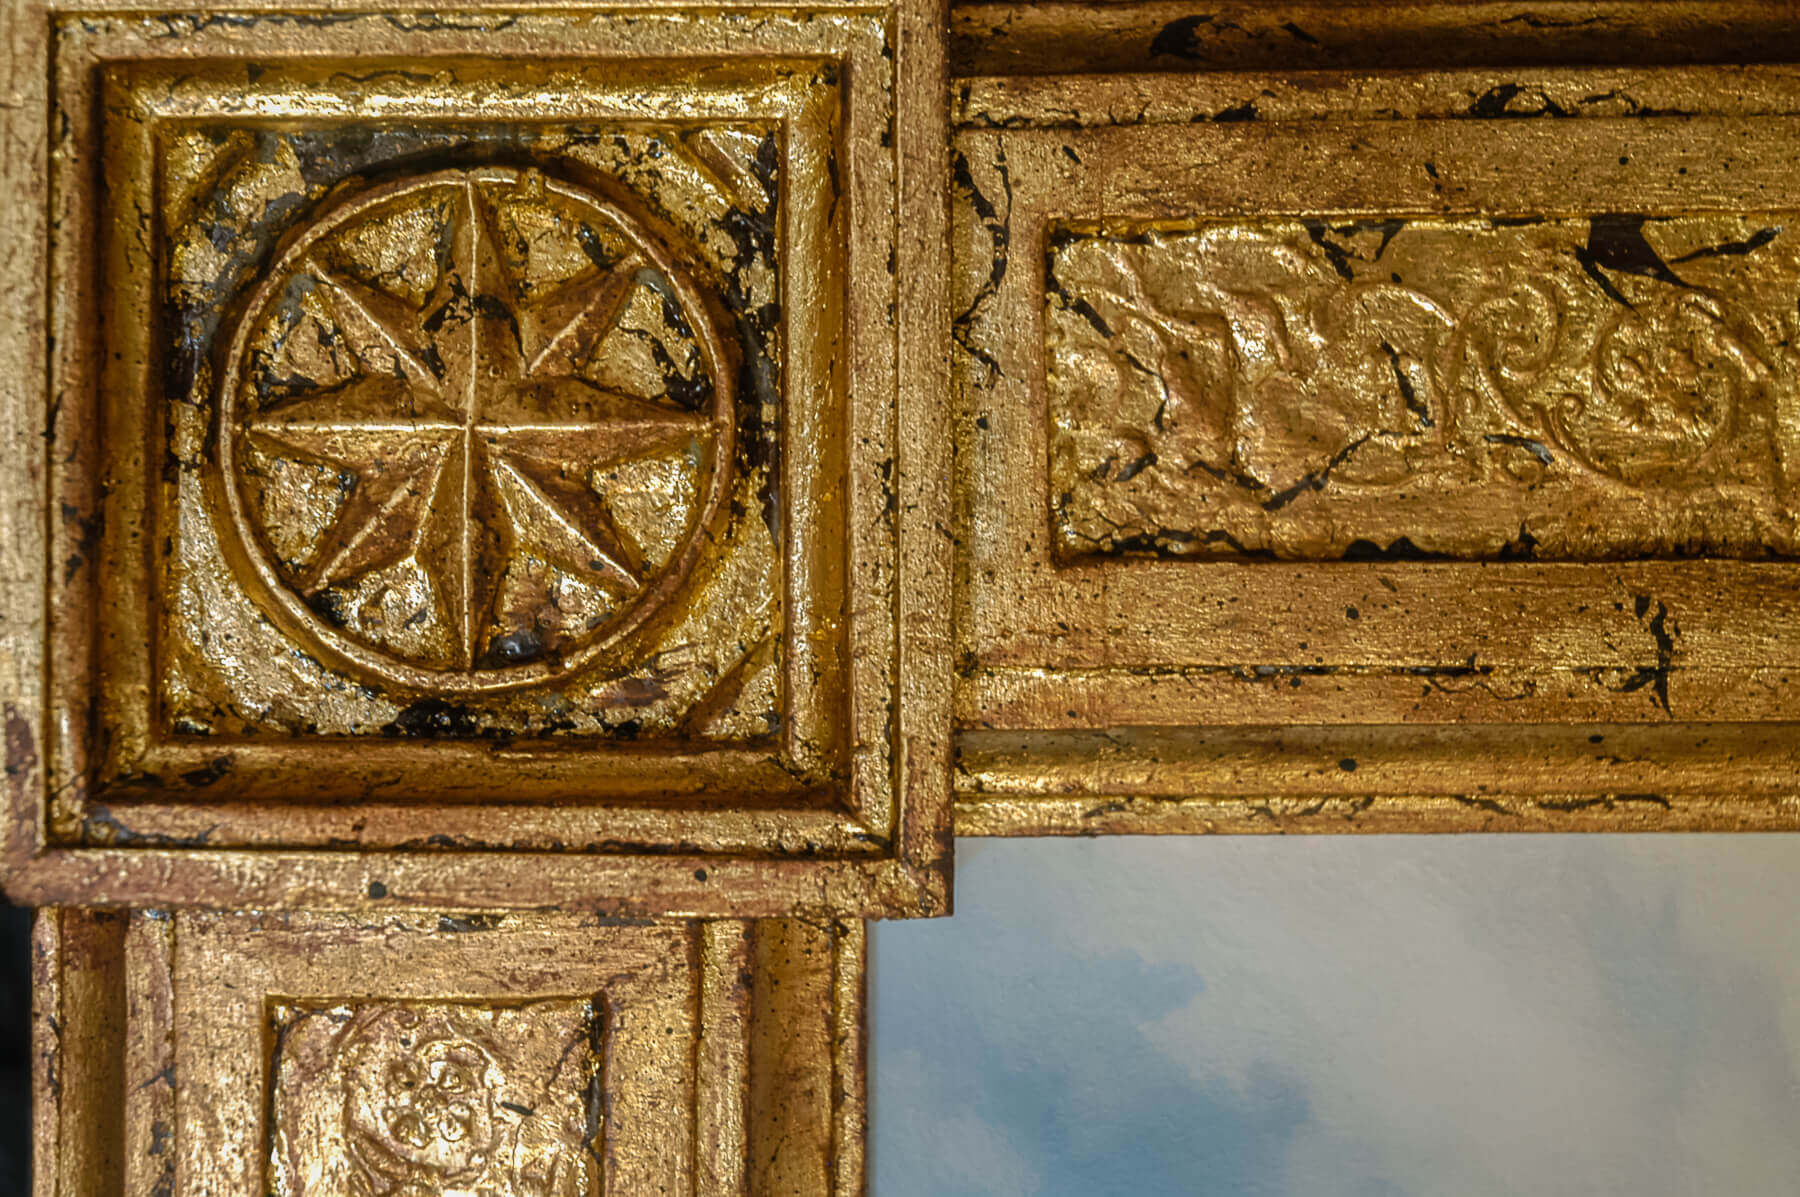 This close-up of one of the frame corners shows the hand-done gilding, antiquing, and finishing that...